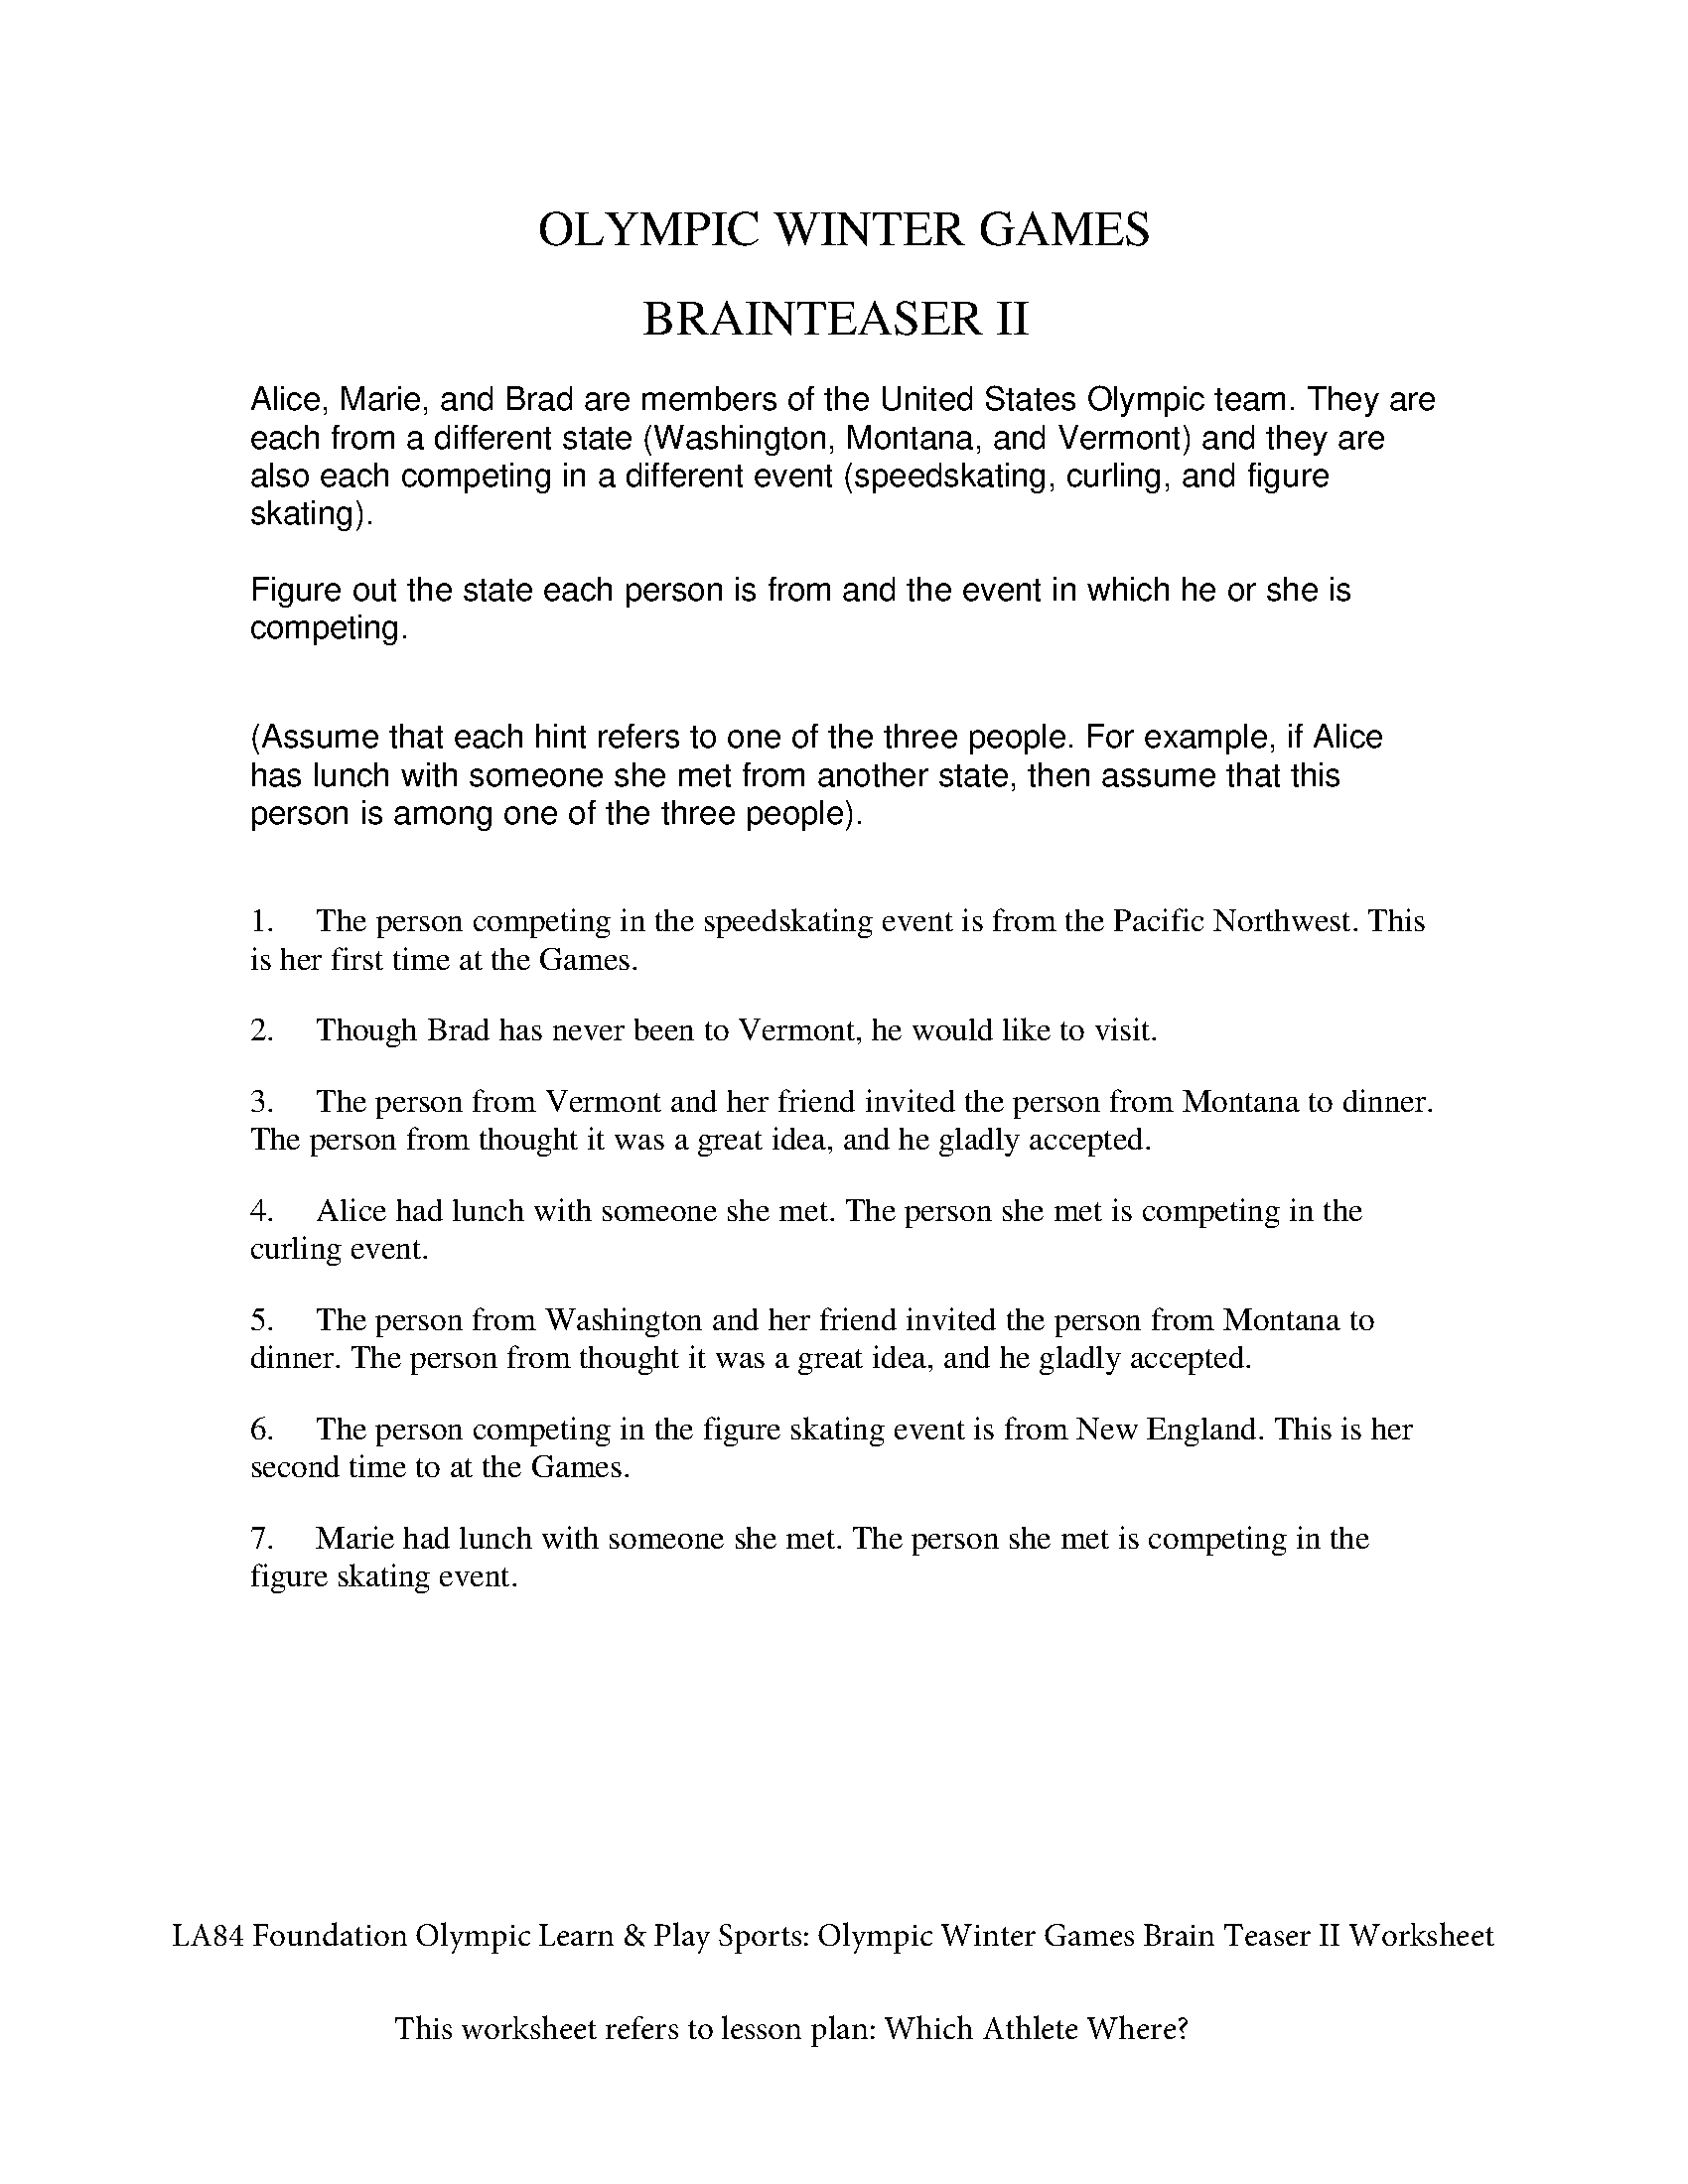 Olympic Learn & Play Sports: Olympic Winter Games Brain Teaser II